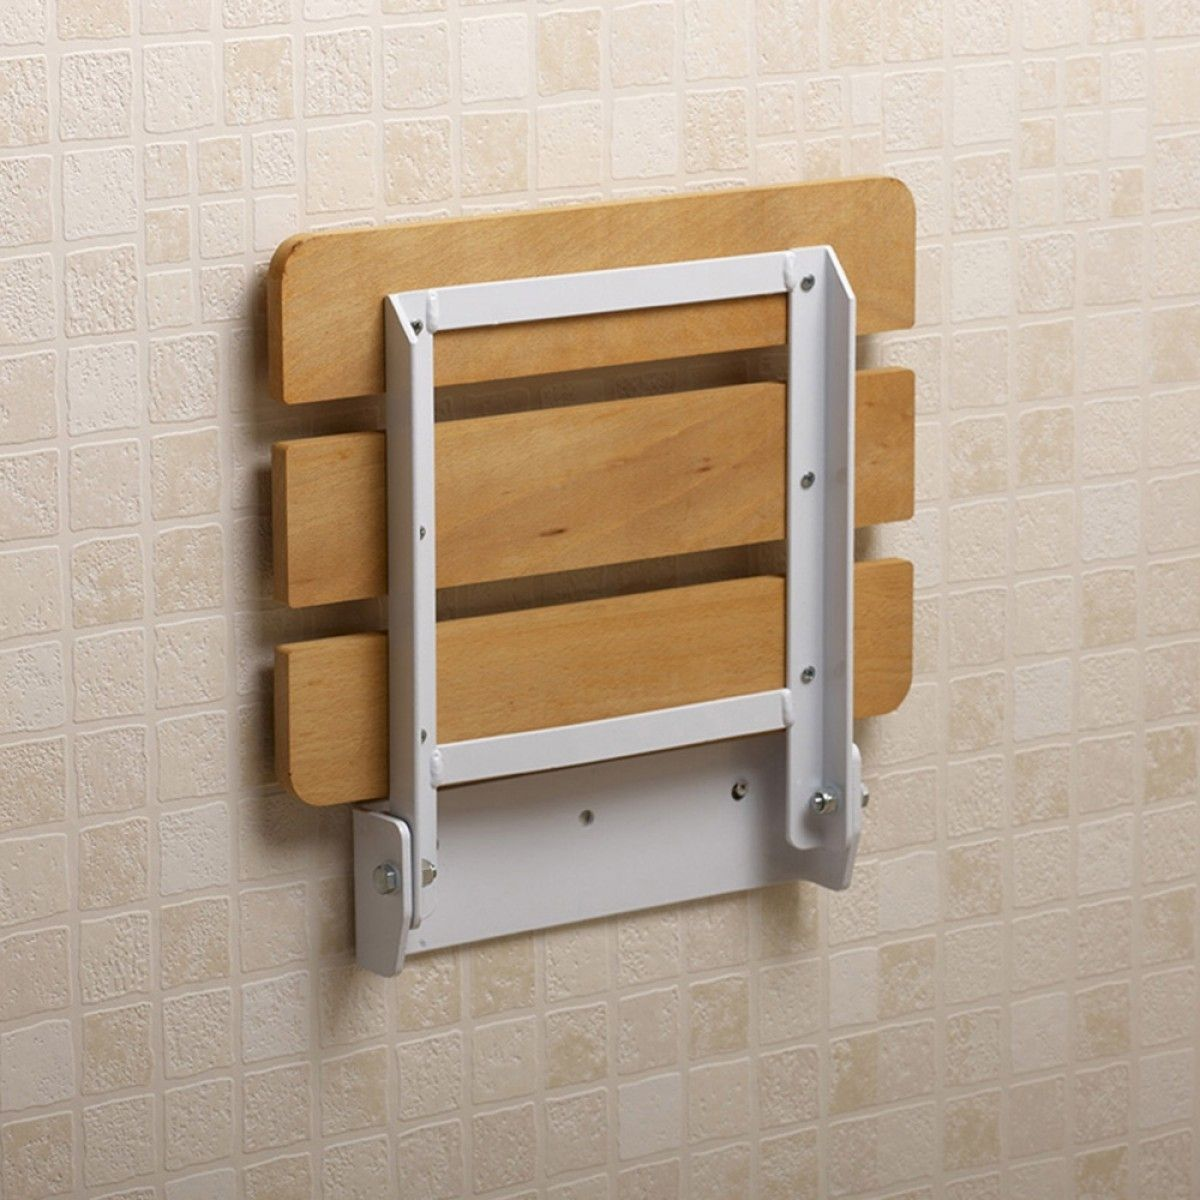 Small Bathroom Spaces With Wood Wall Mounted Folding Shower Seats